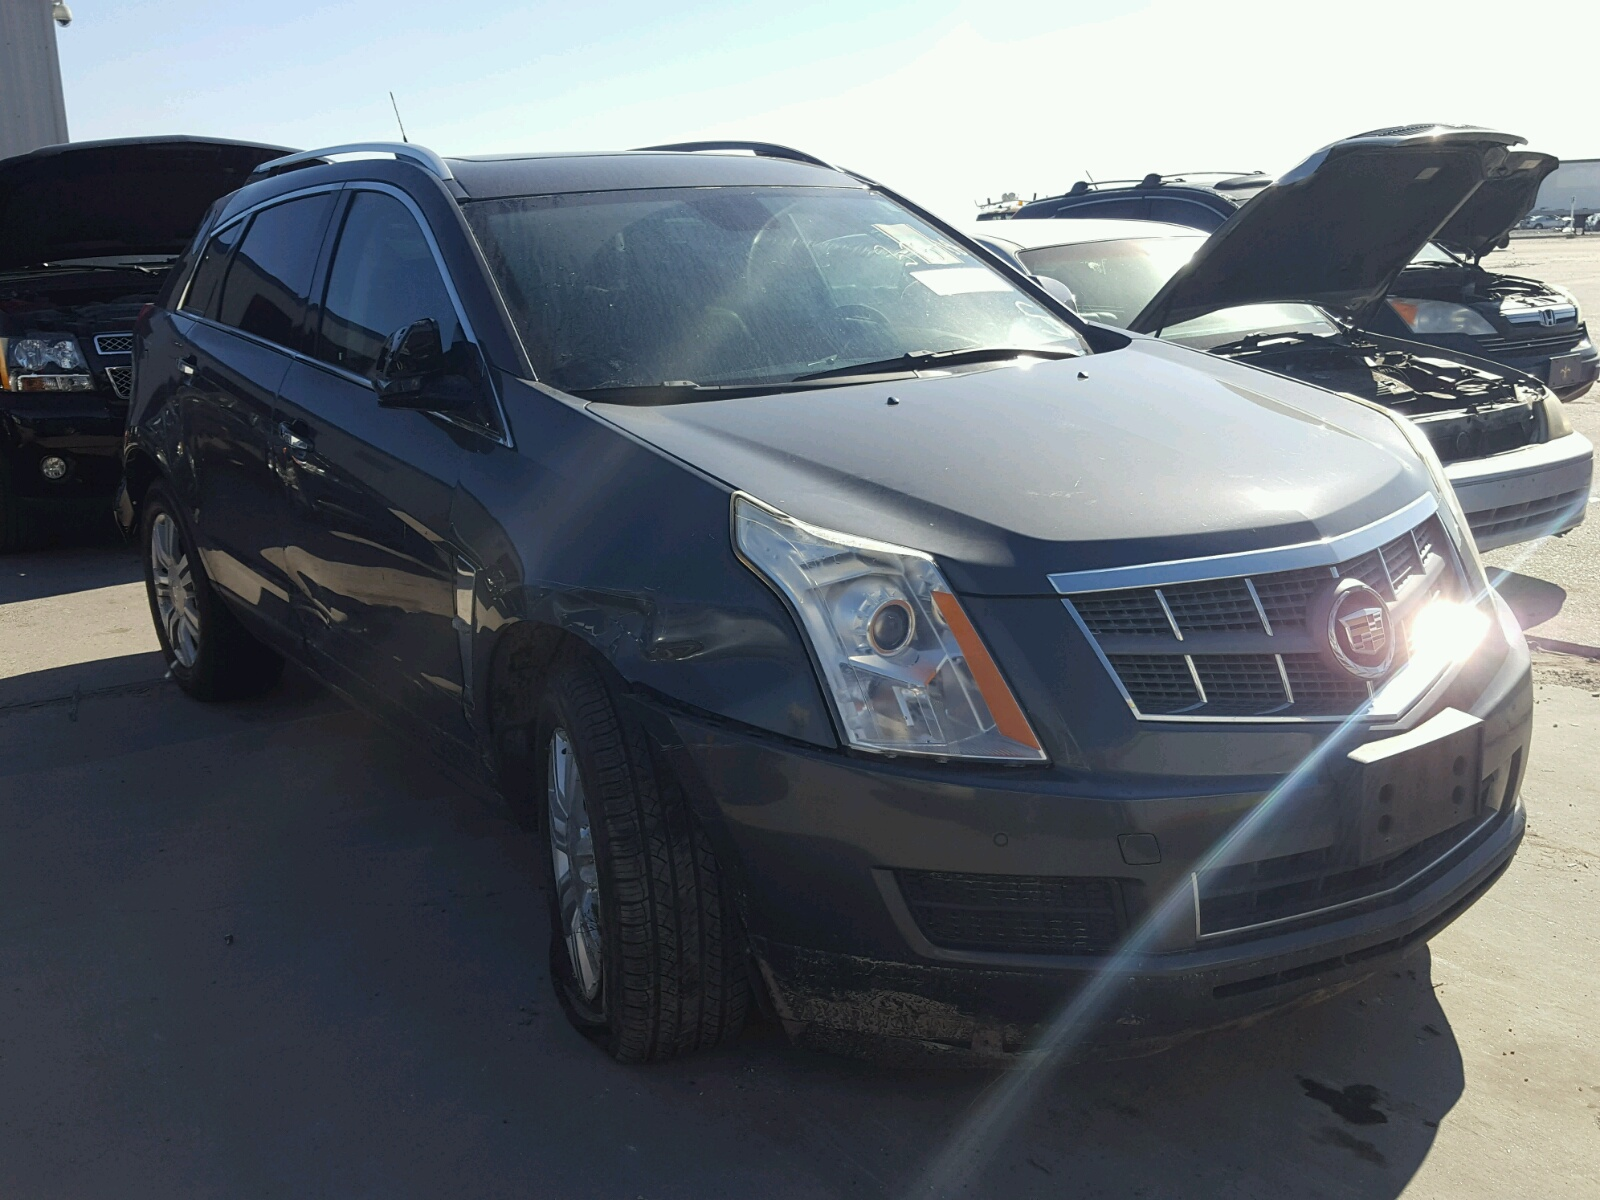 suv photo sale fwd see srx size full ga collection cadillac for performance buford click used to